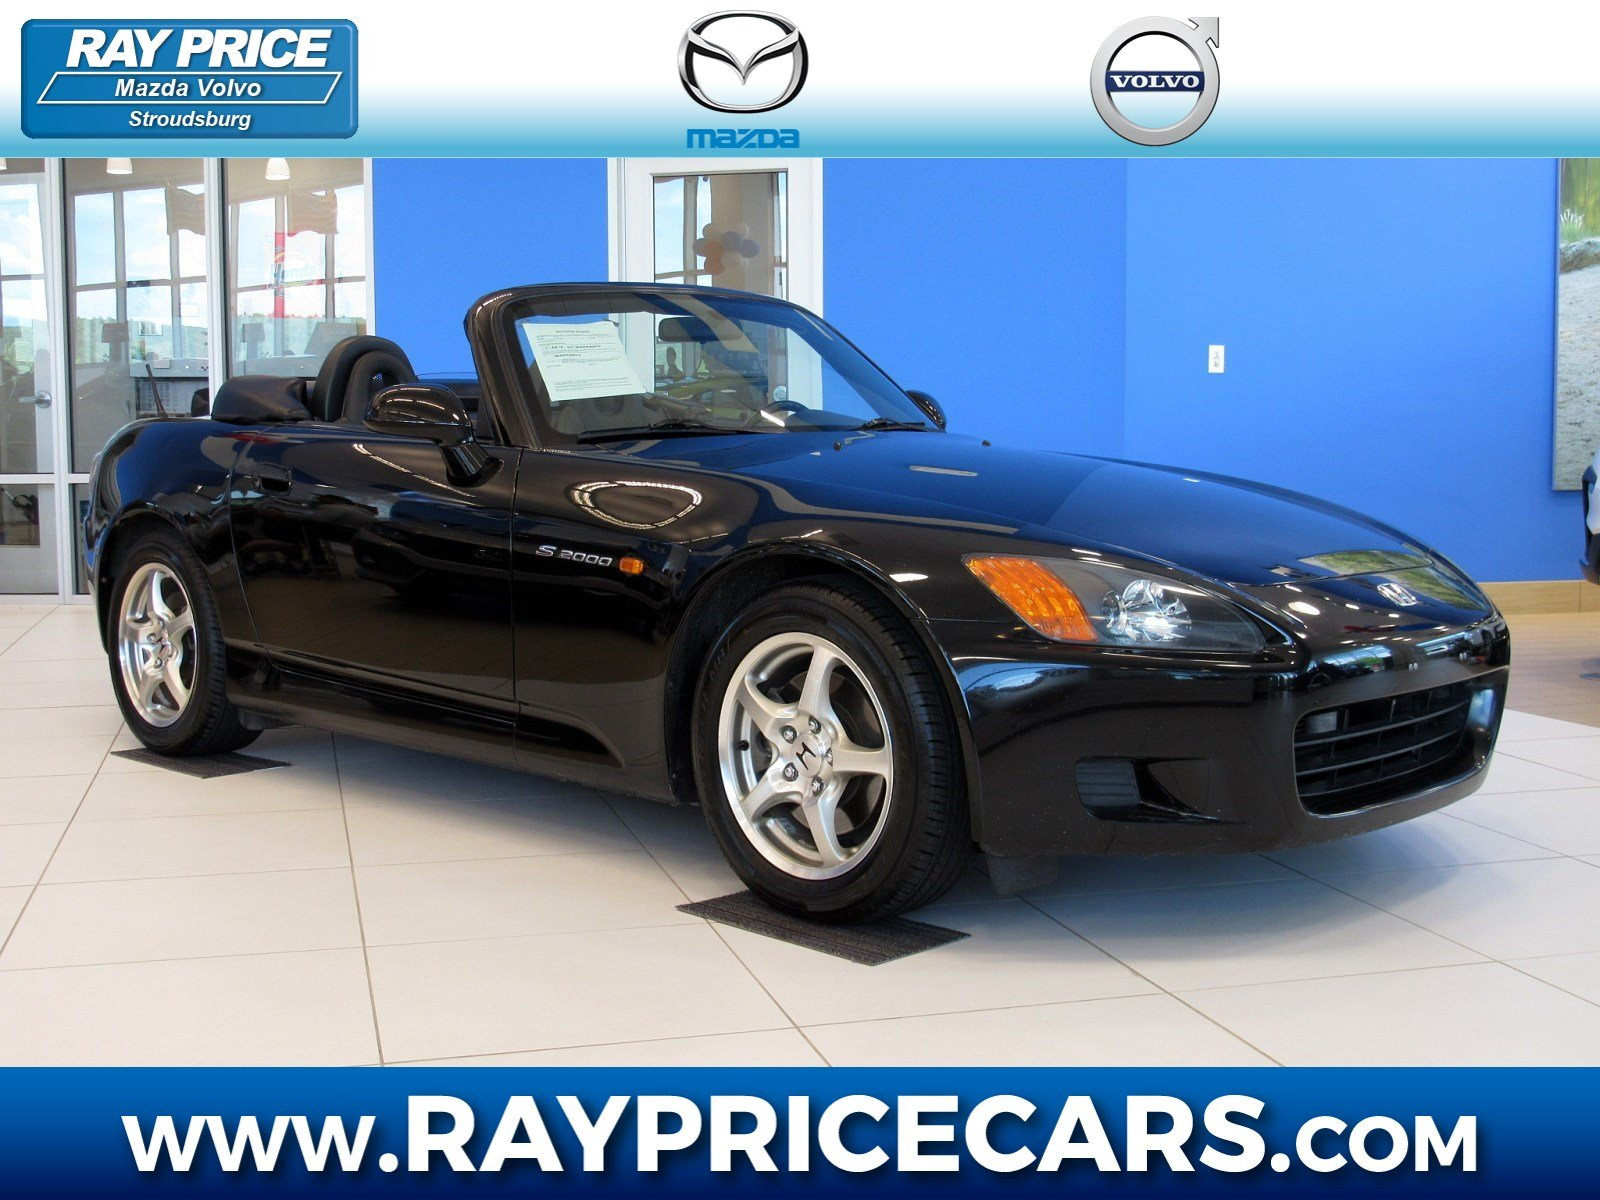 Honda S2000 Price >> Used 2002 Honda S2000 For Sale At Ray Price Ford Vin Jhmap11482t005034